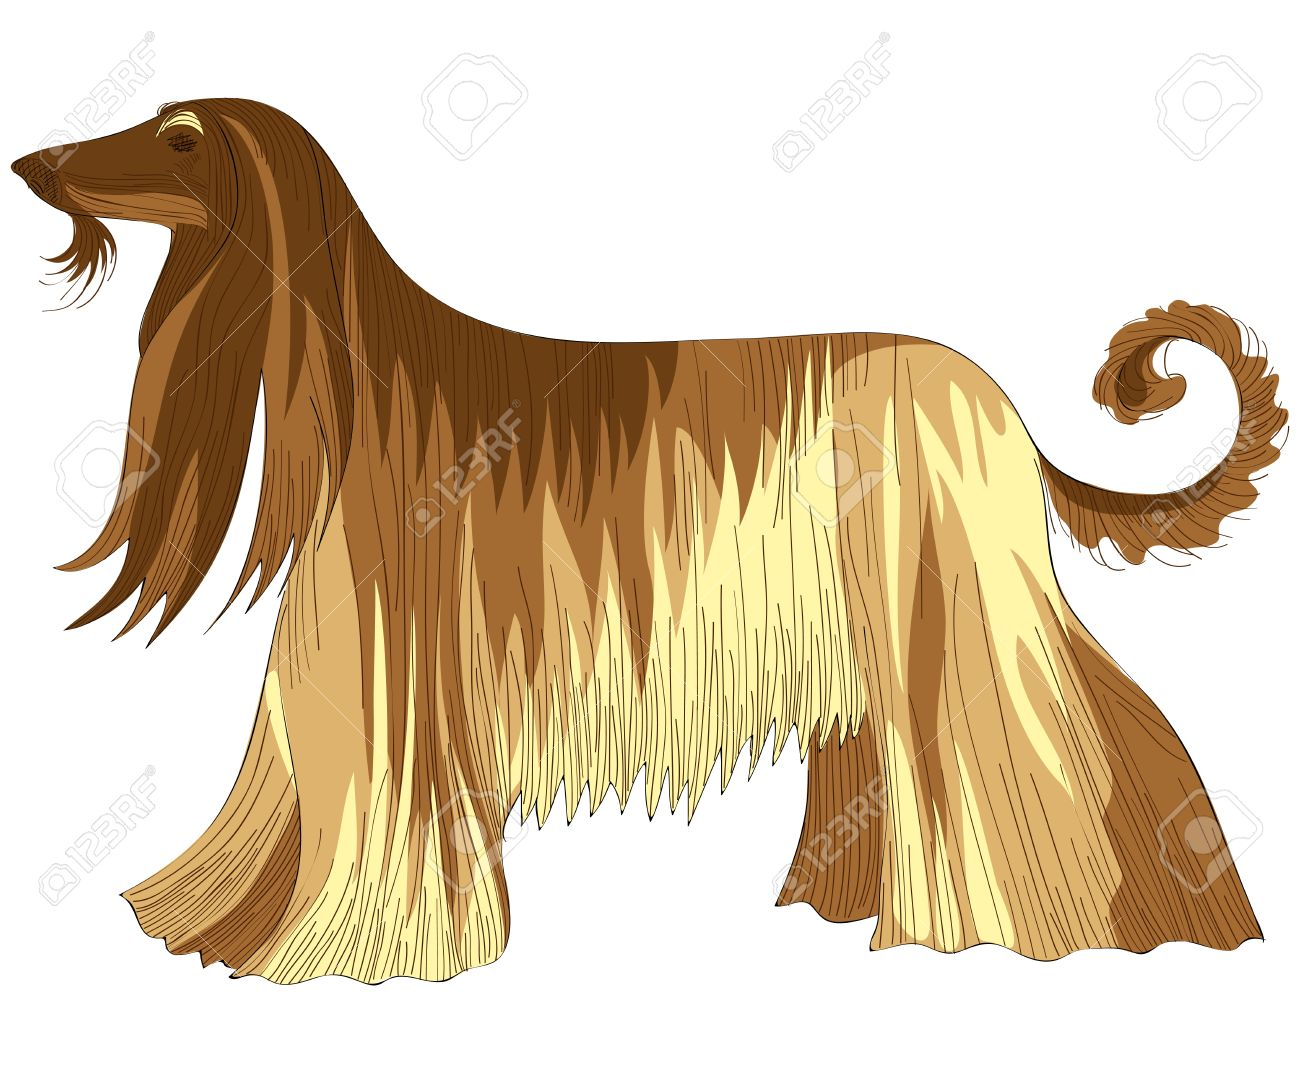 Afghan Hound clipart #16, Download drawings